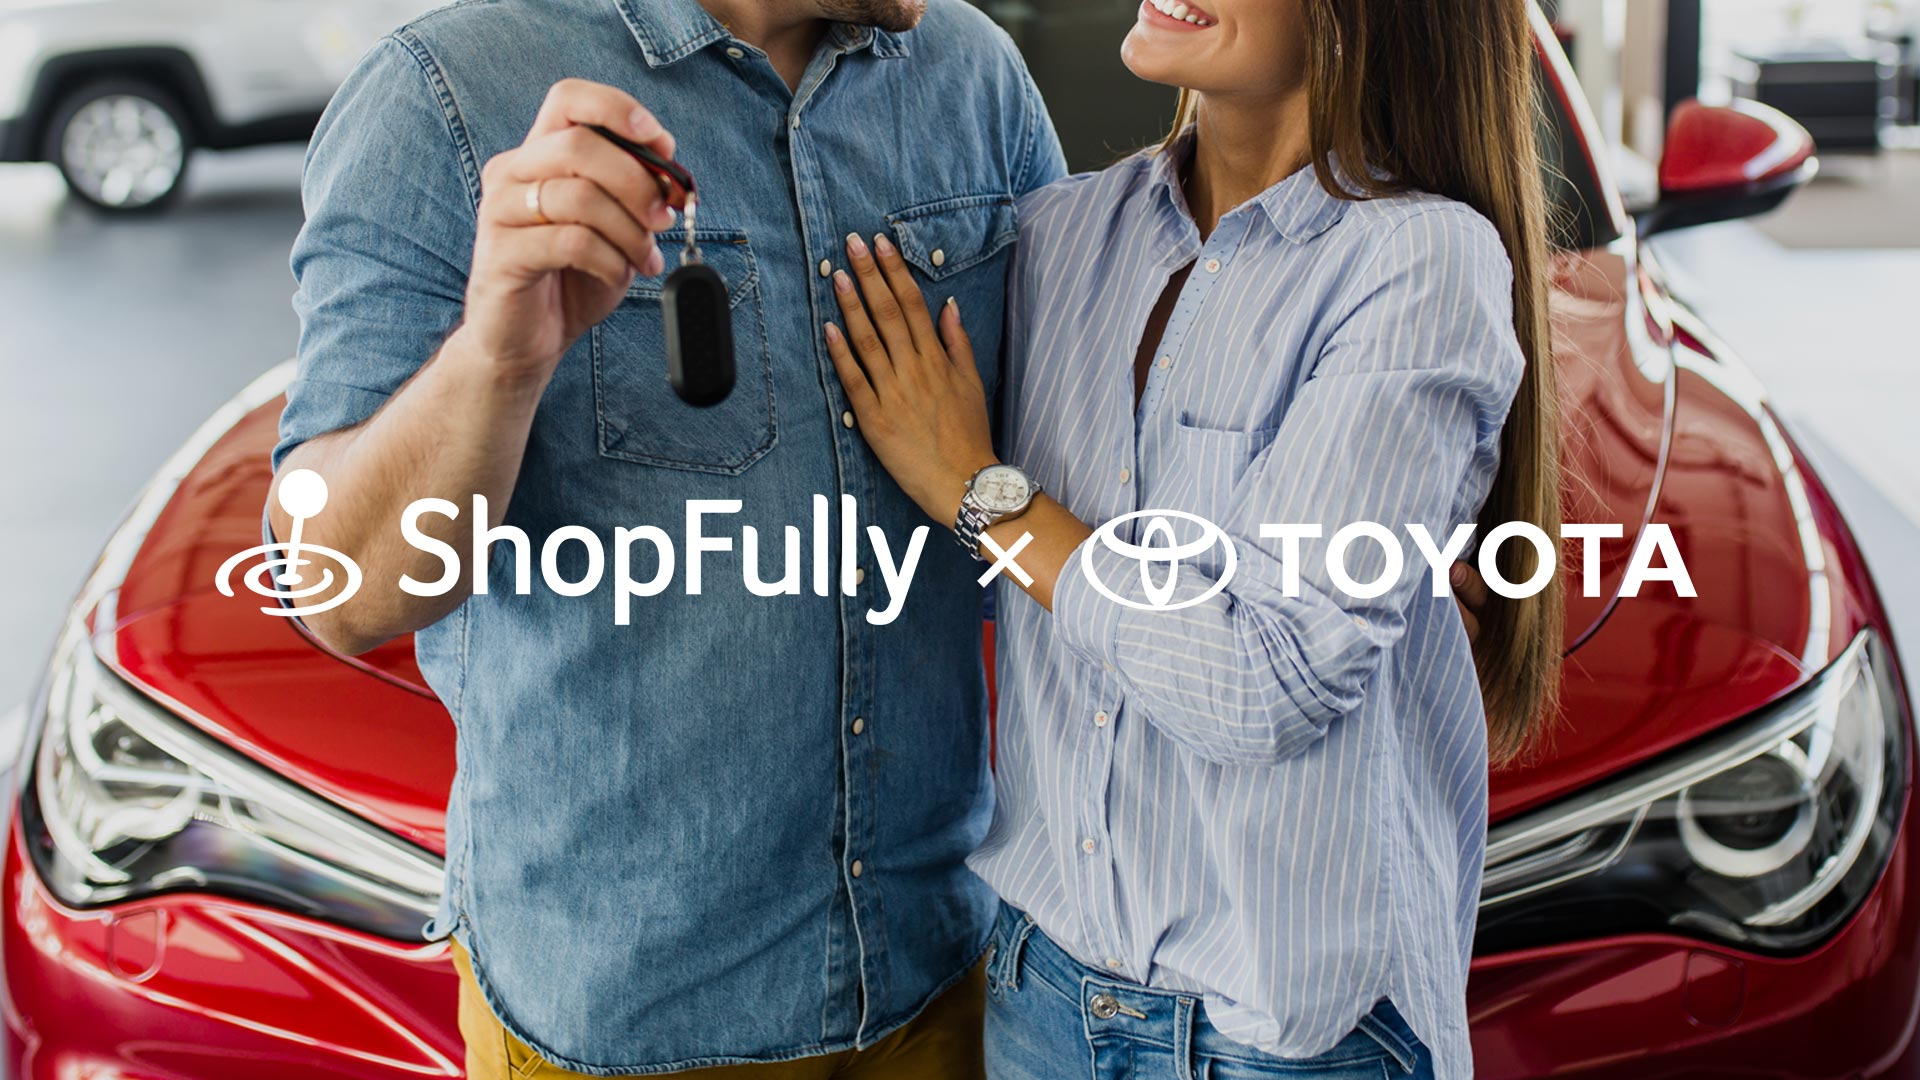 ShopFully x Toyota